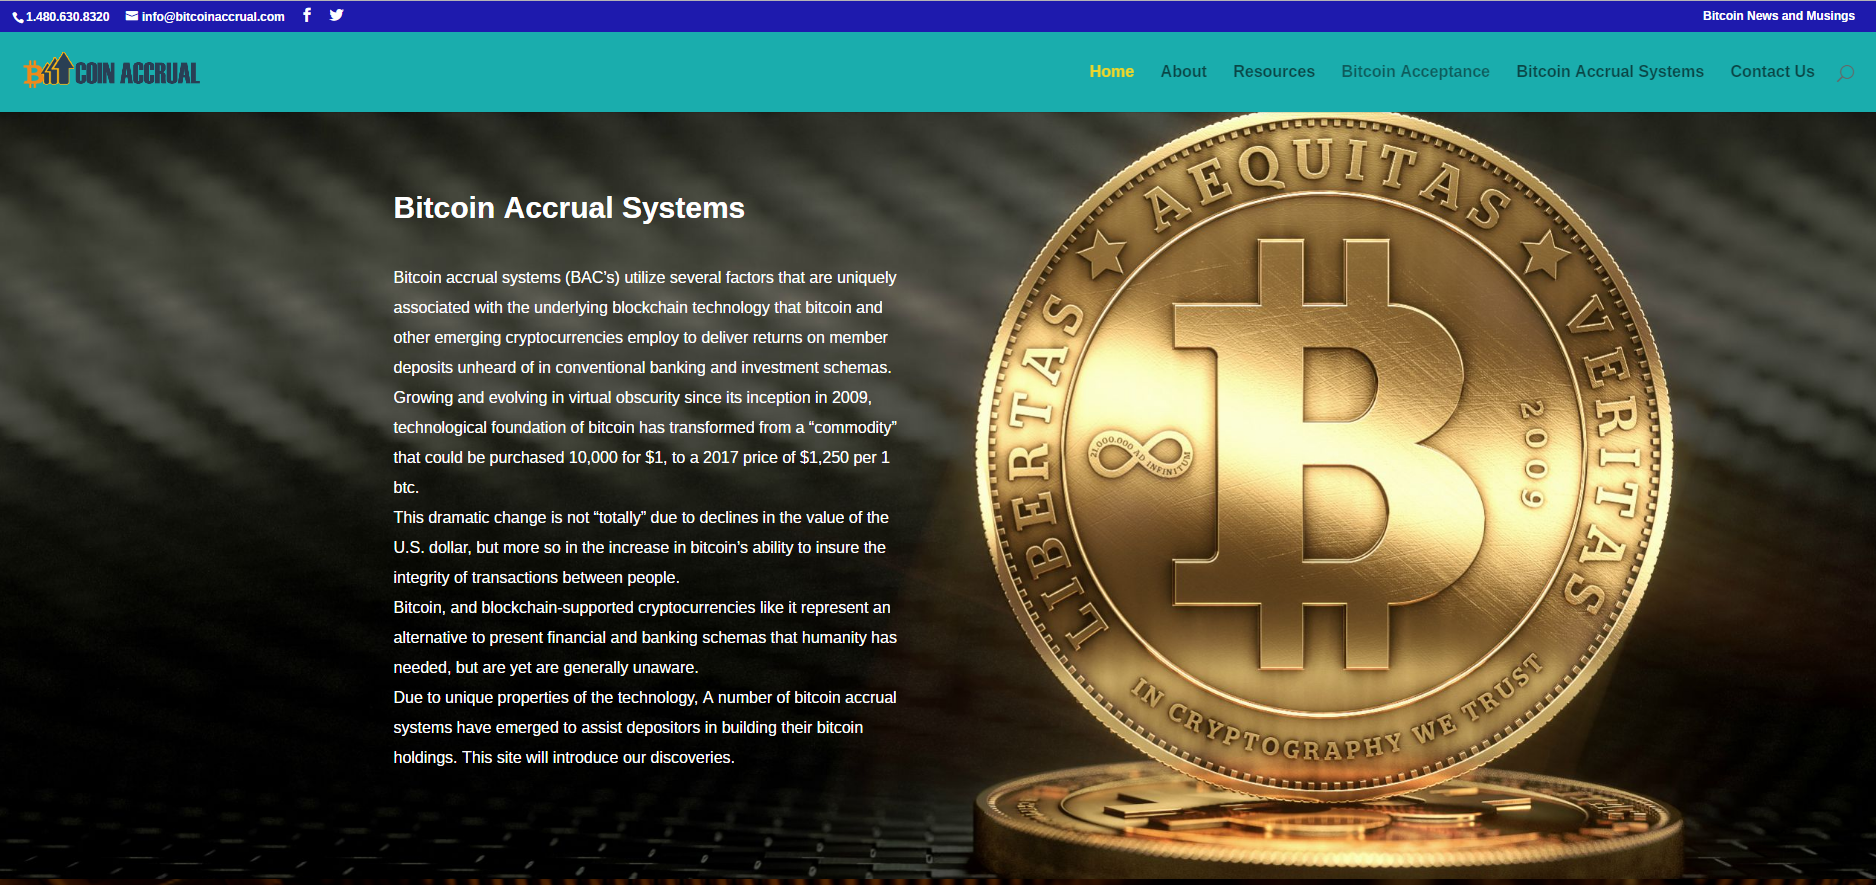 Bitcoin Accrual Systems and Strategies